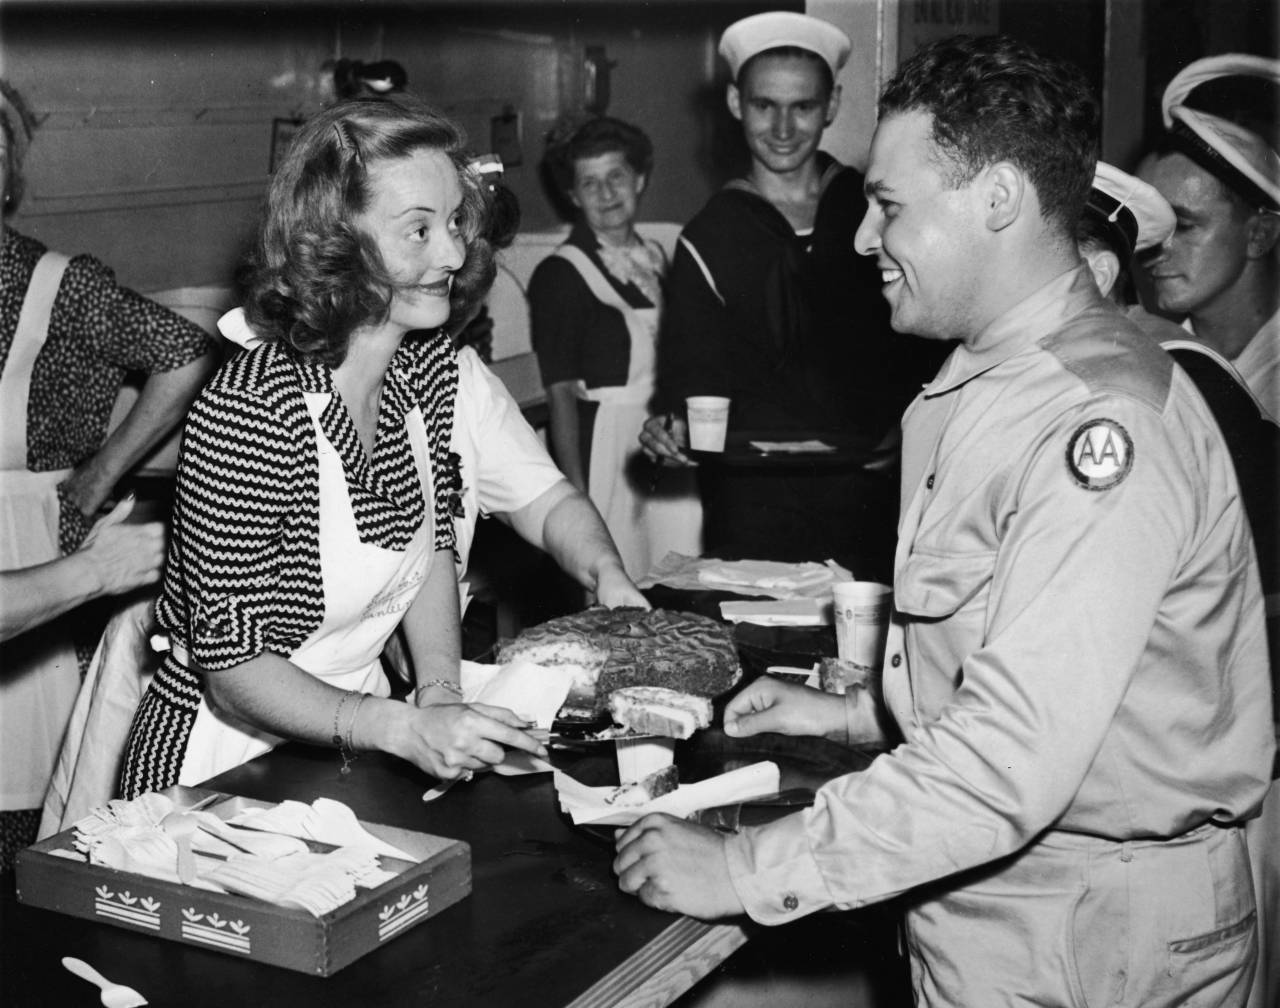 American actor Bette Davis (1908 - 1989) smiles as she serves a slice of cake to US Army private Vazquez while helping Allied troops in the Stage Door Canteen, New York City, July 10, 1943. (Photo by Hulton Archive/Getty Images)